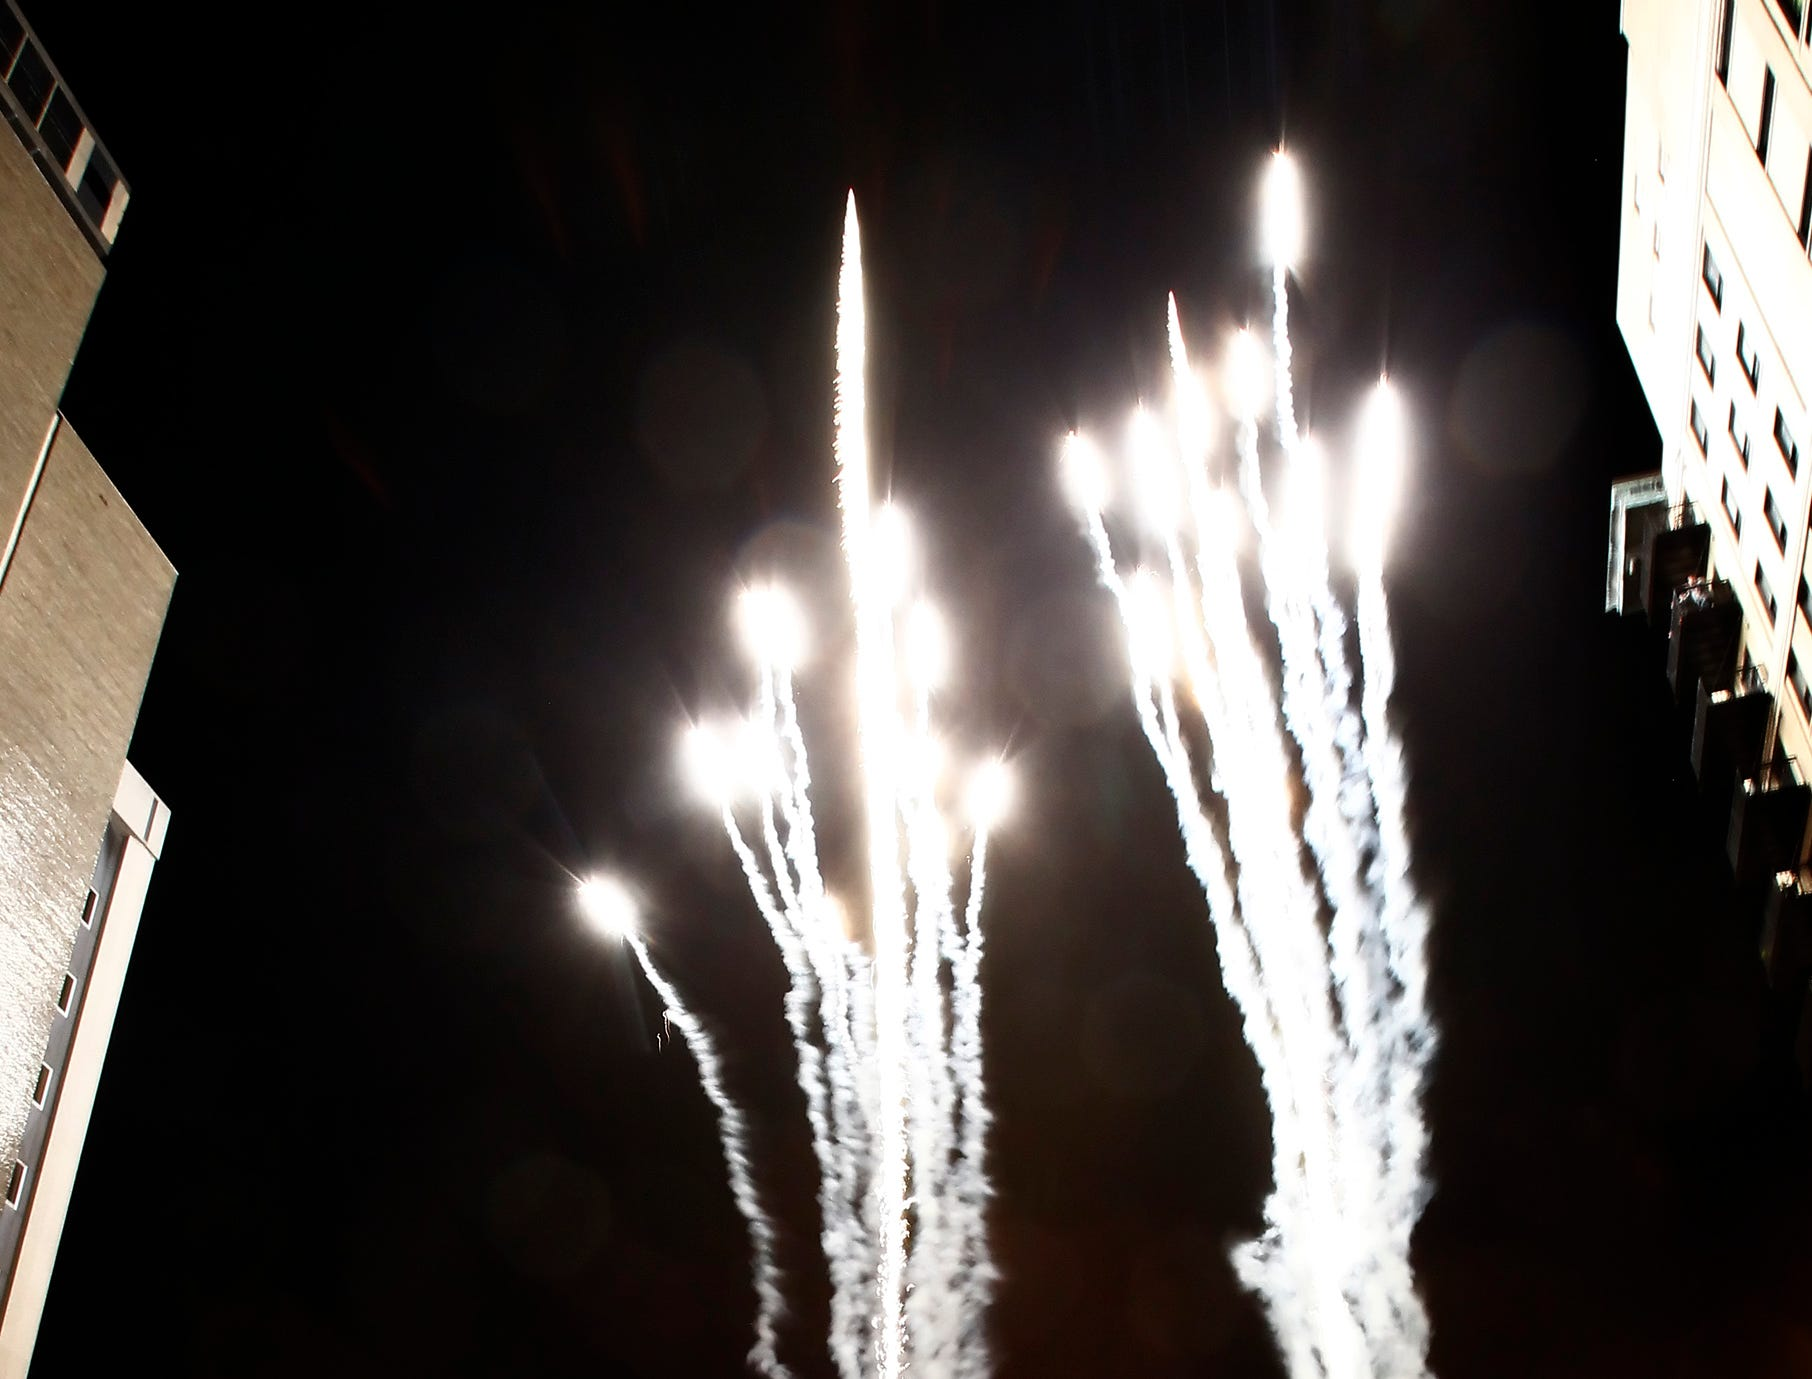 People watch as fireworks explode during the lighting of the Christmas tree at Market Square Friday, Nov. 25, 2011.